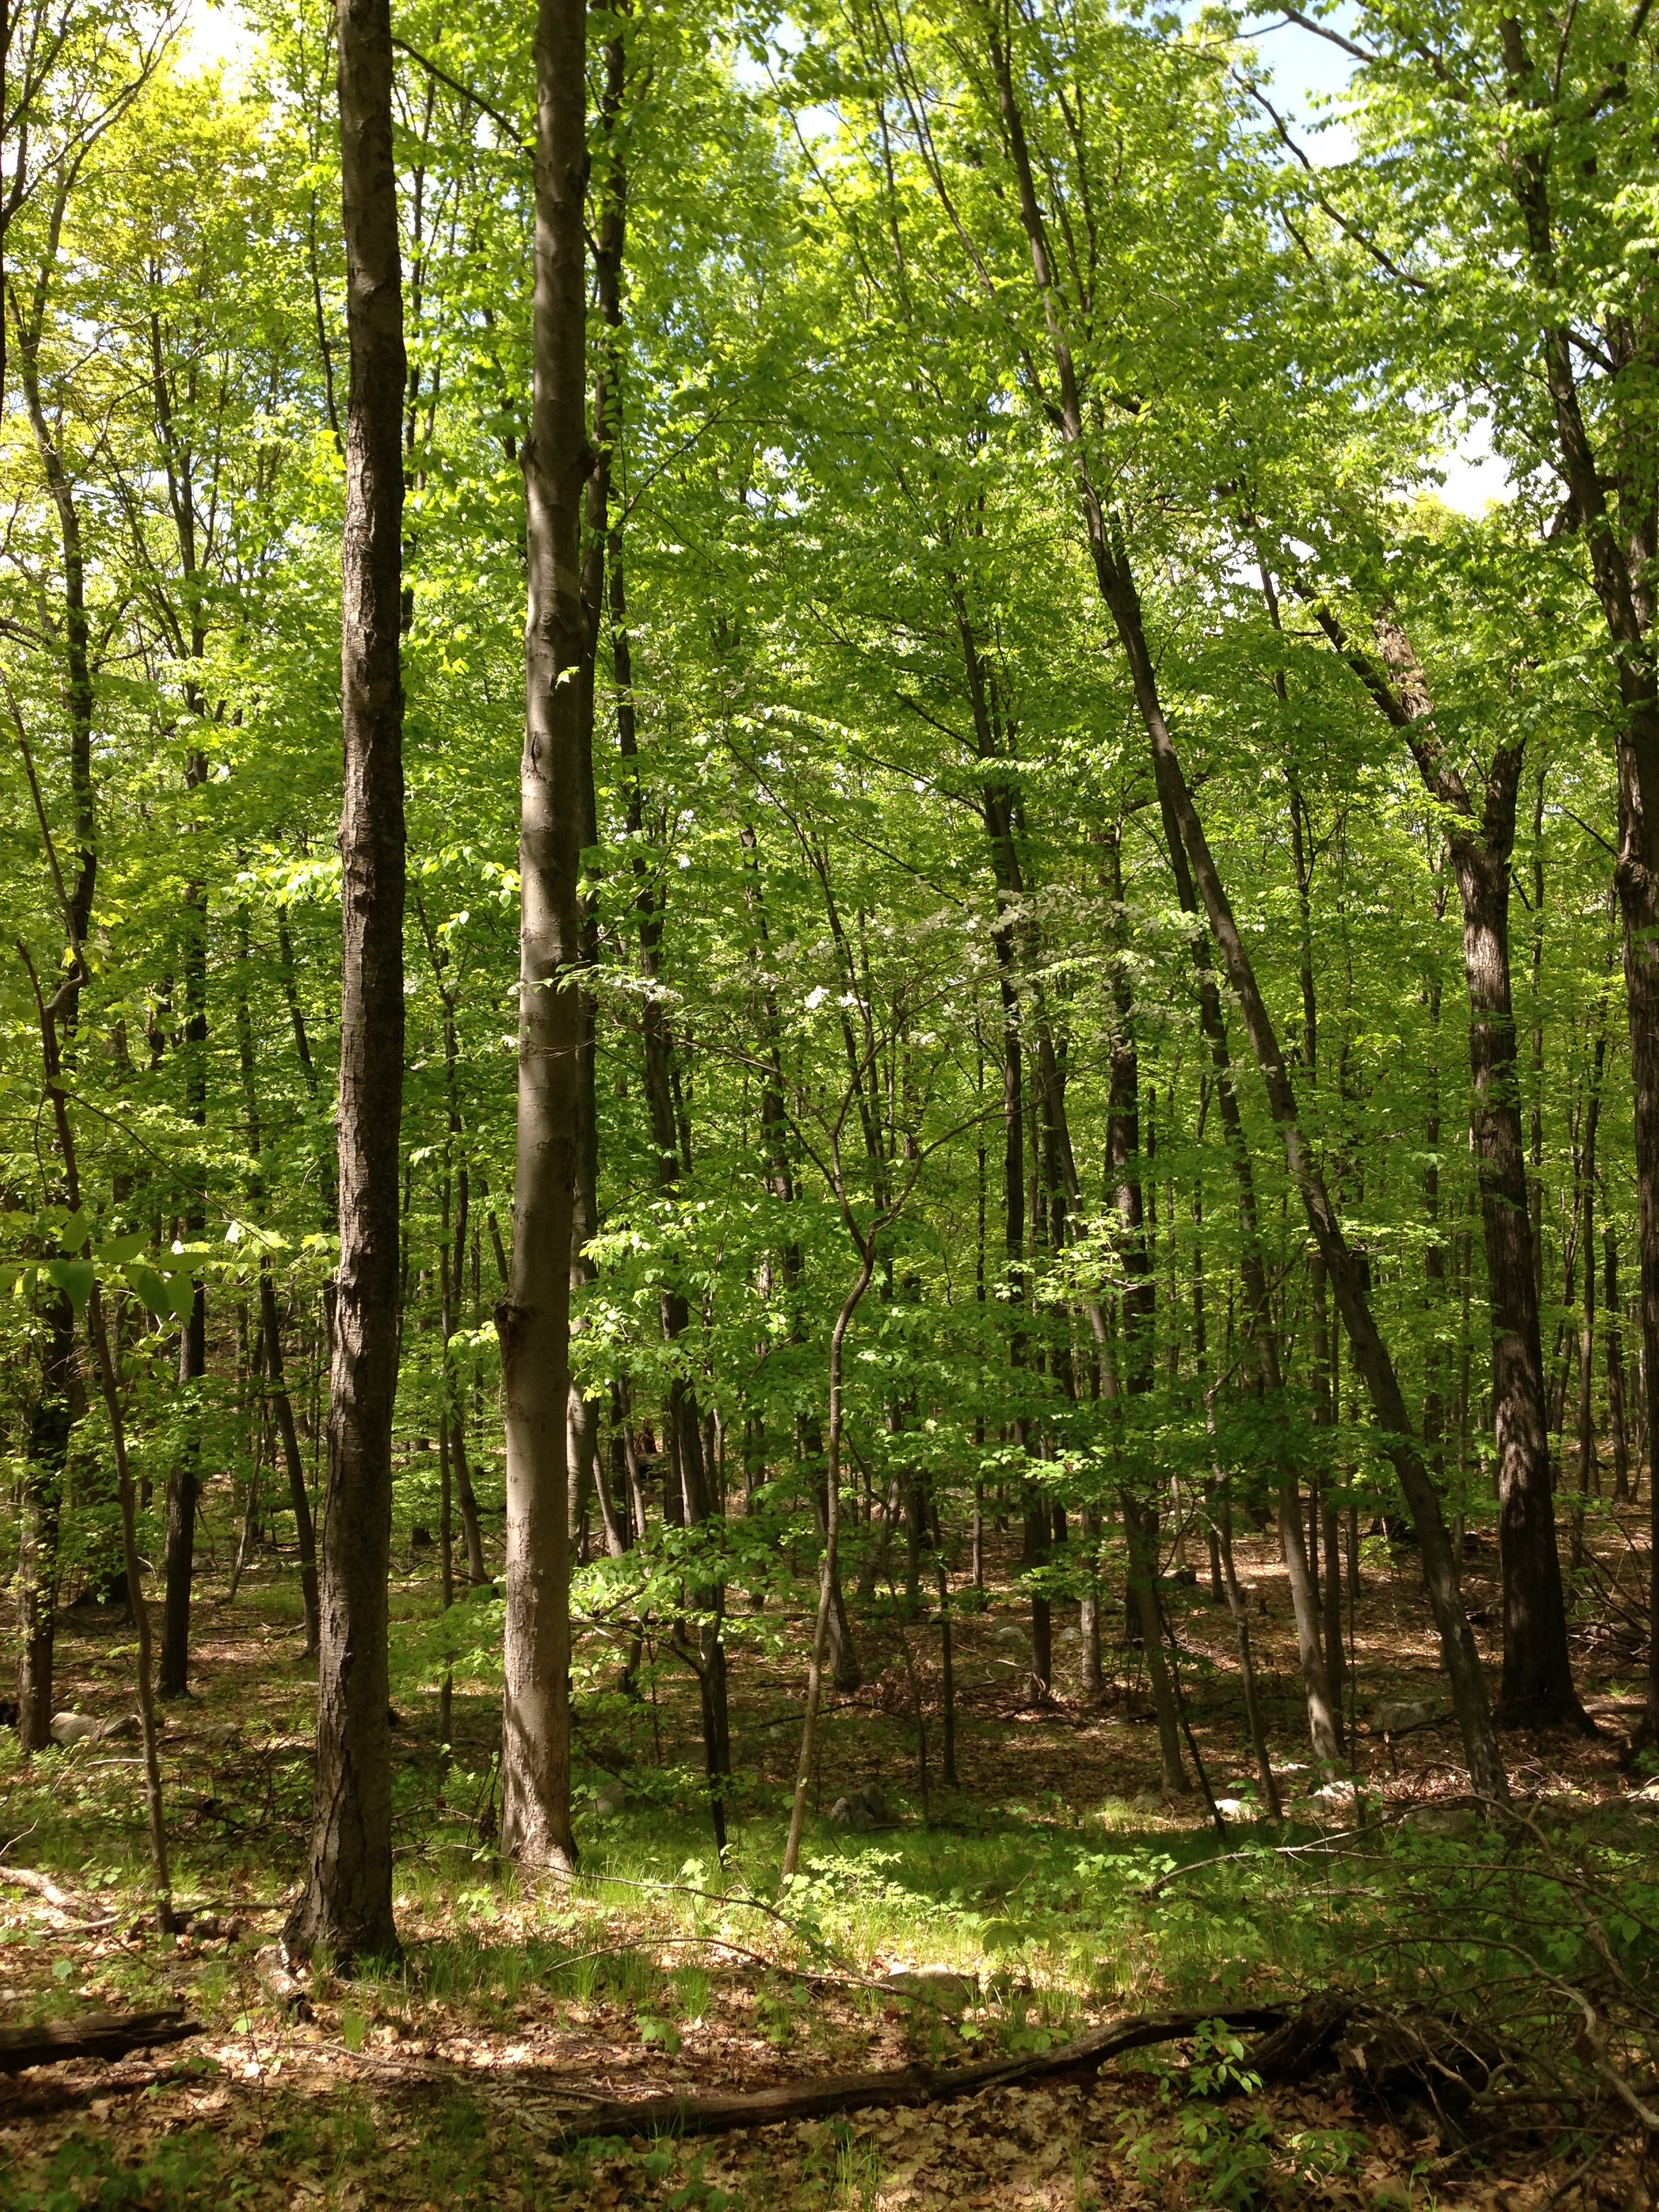 File:2013-05-12 14 05 14 Dogwood deep in the forest along the ...